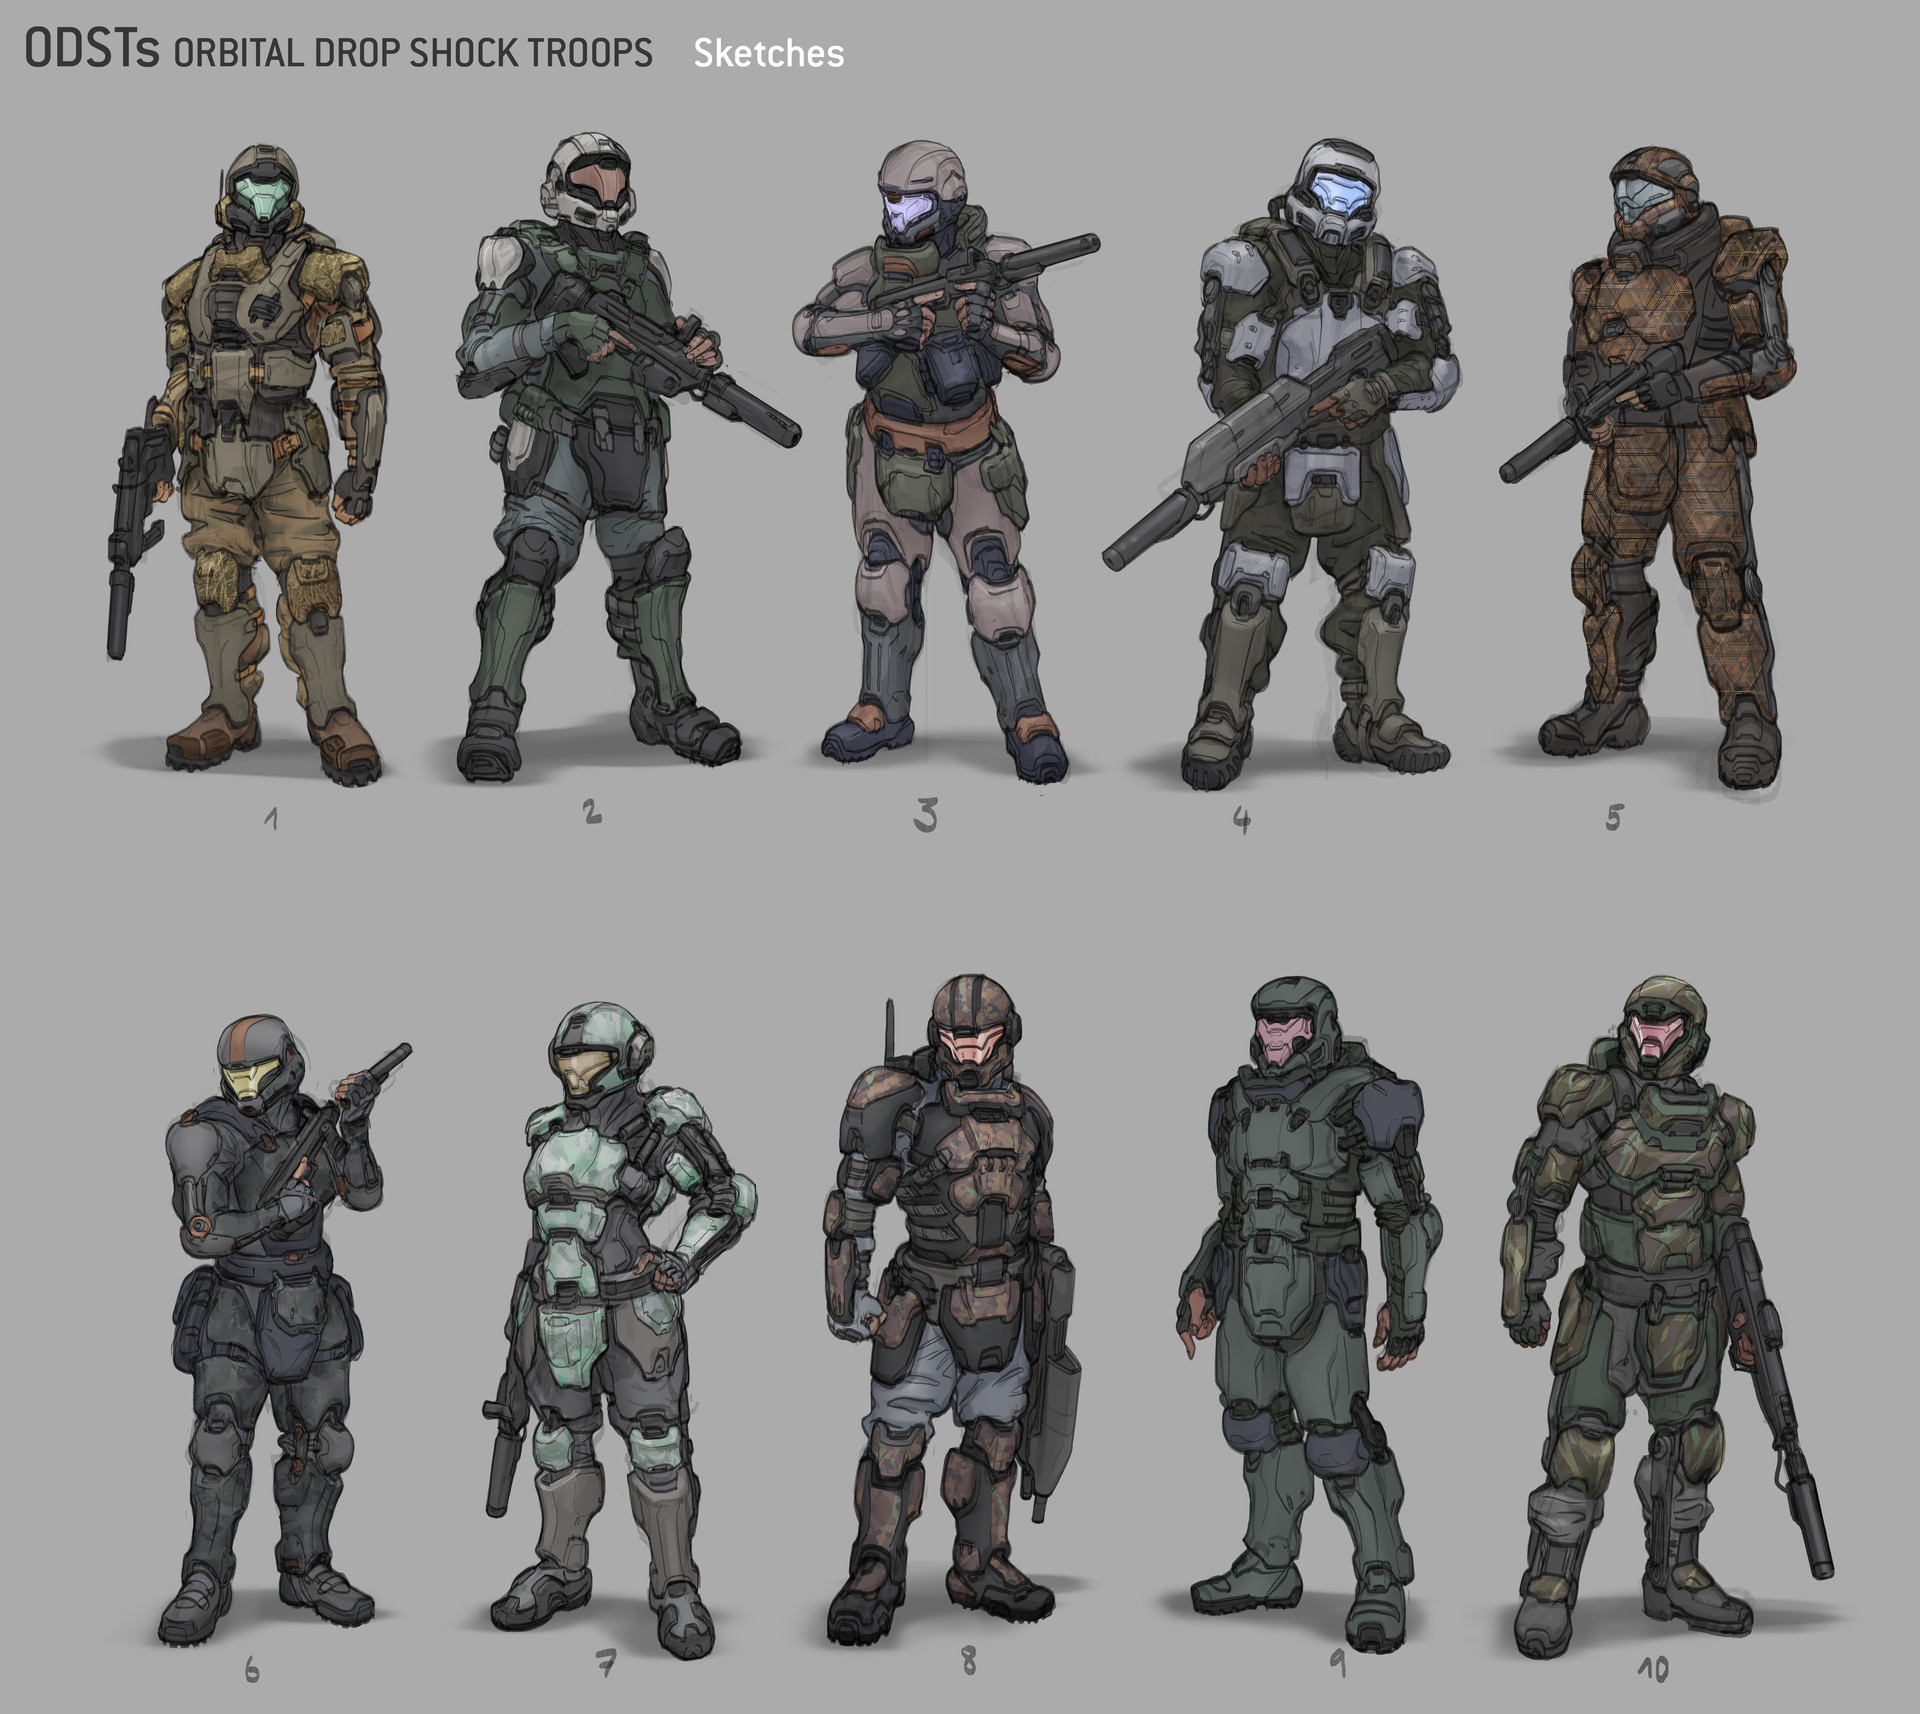 Artstation halo 5 guardians odst alex j cunningham odst sketches referencing robogabos excellent sketches i tried some female ones publicscrutiny Image collections